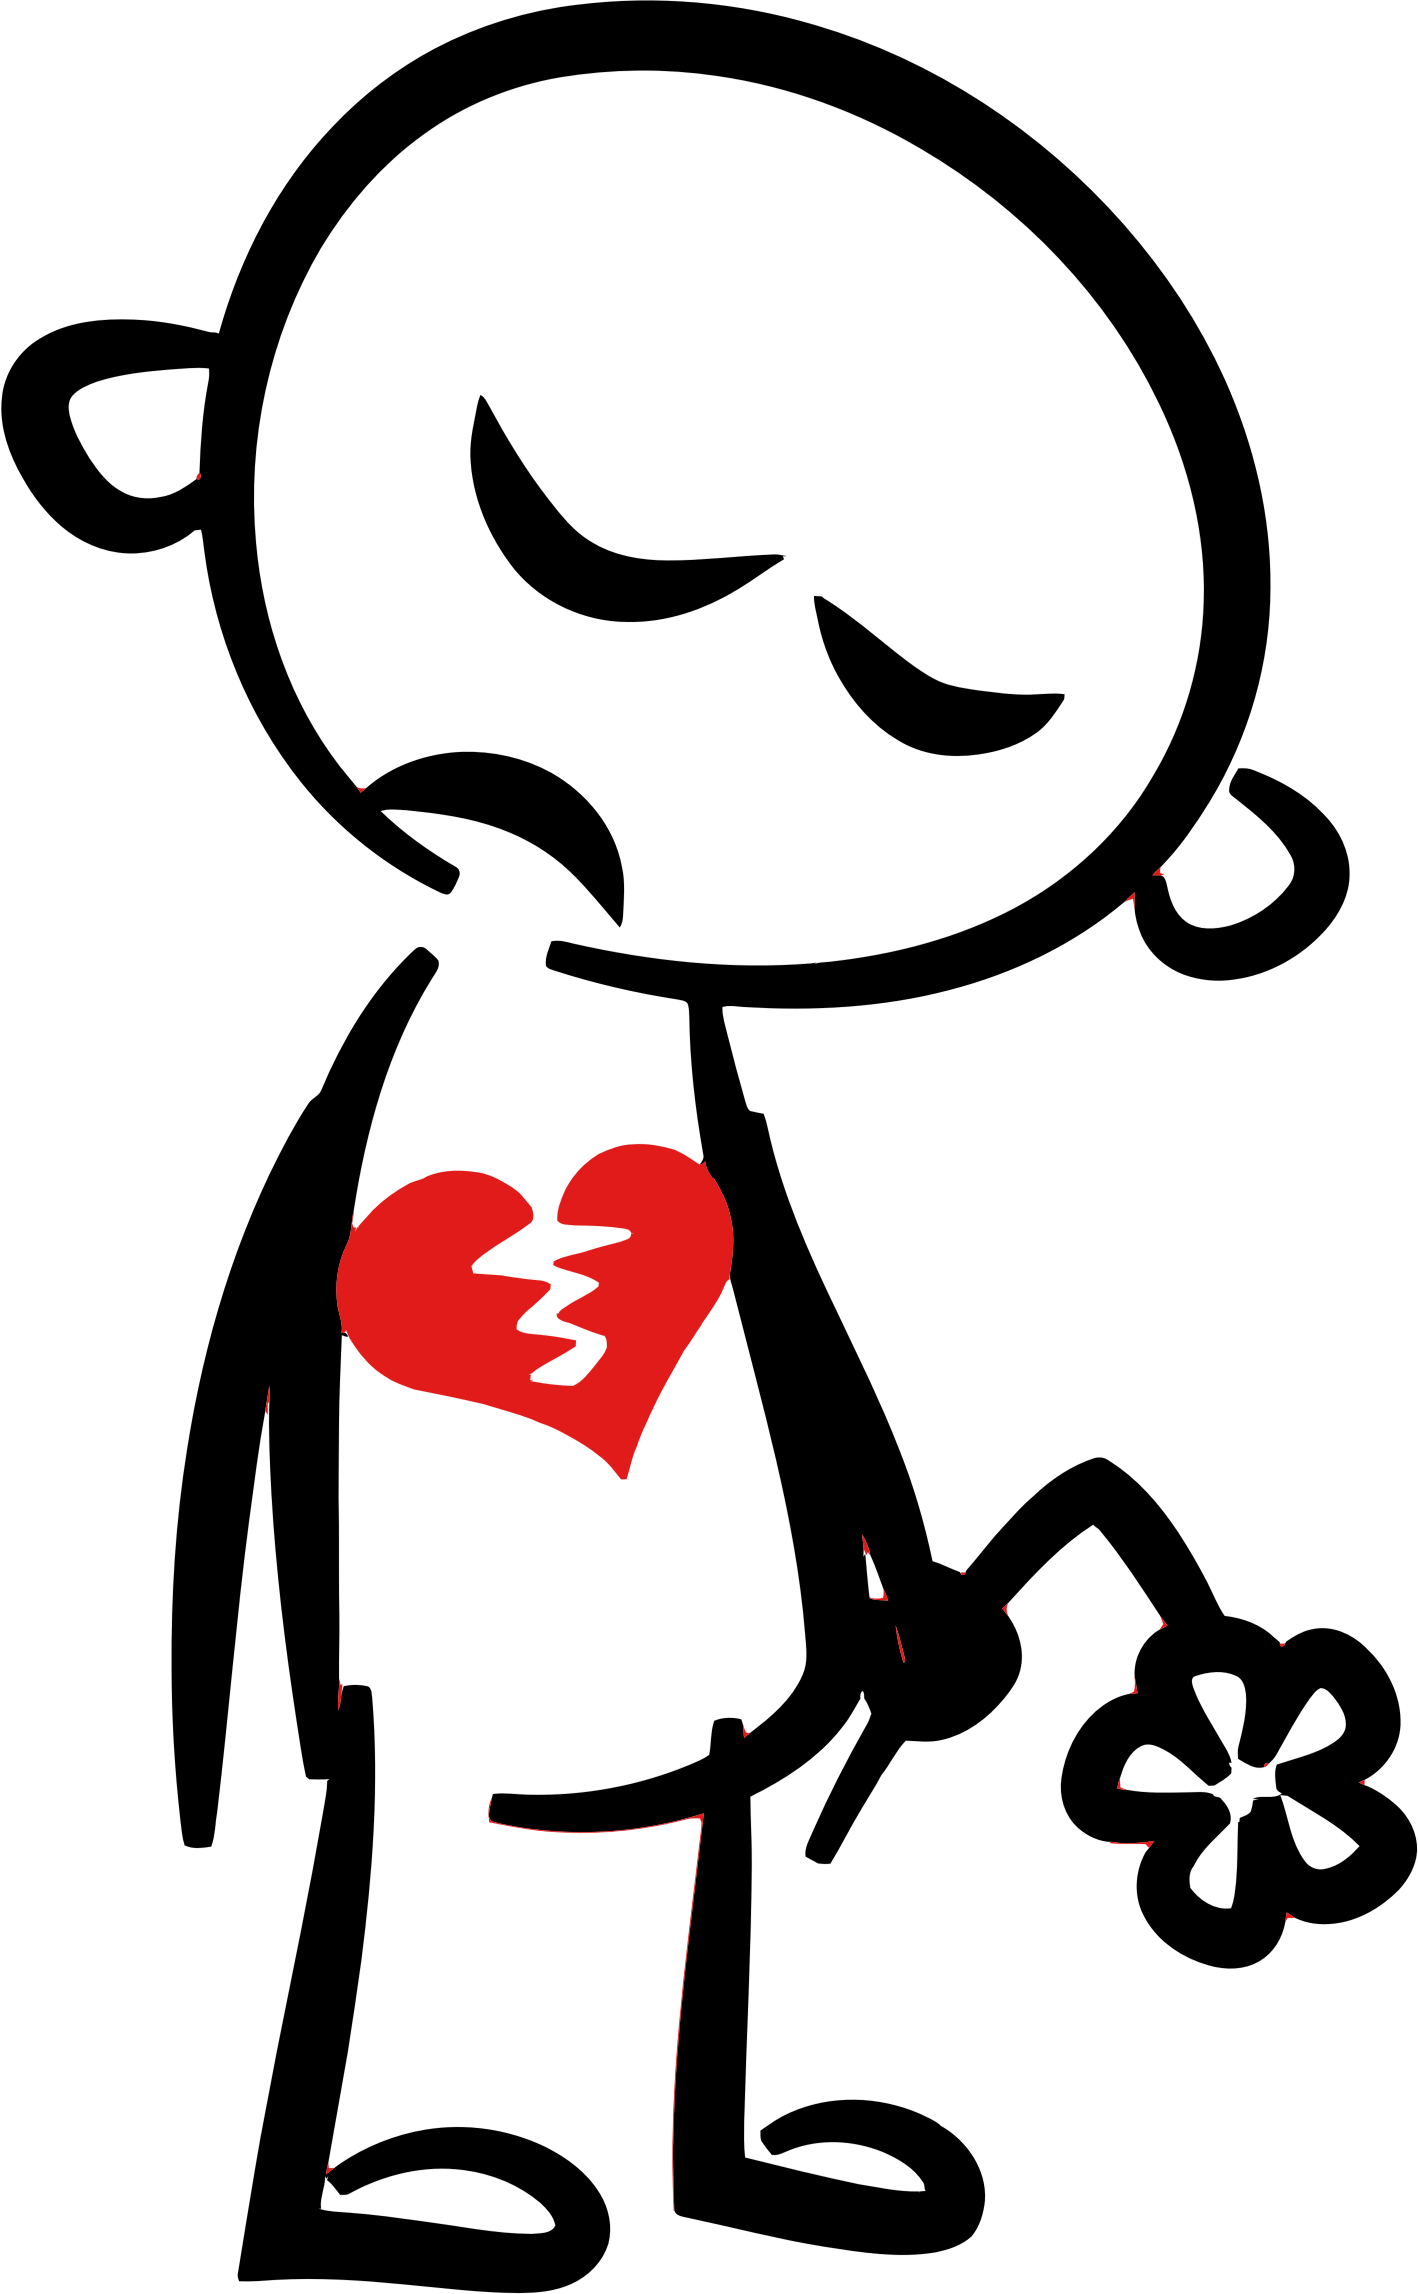 Broken heart images illustrations. Statistics clipart photography